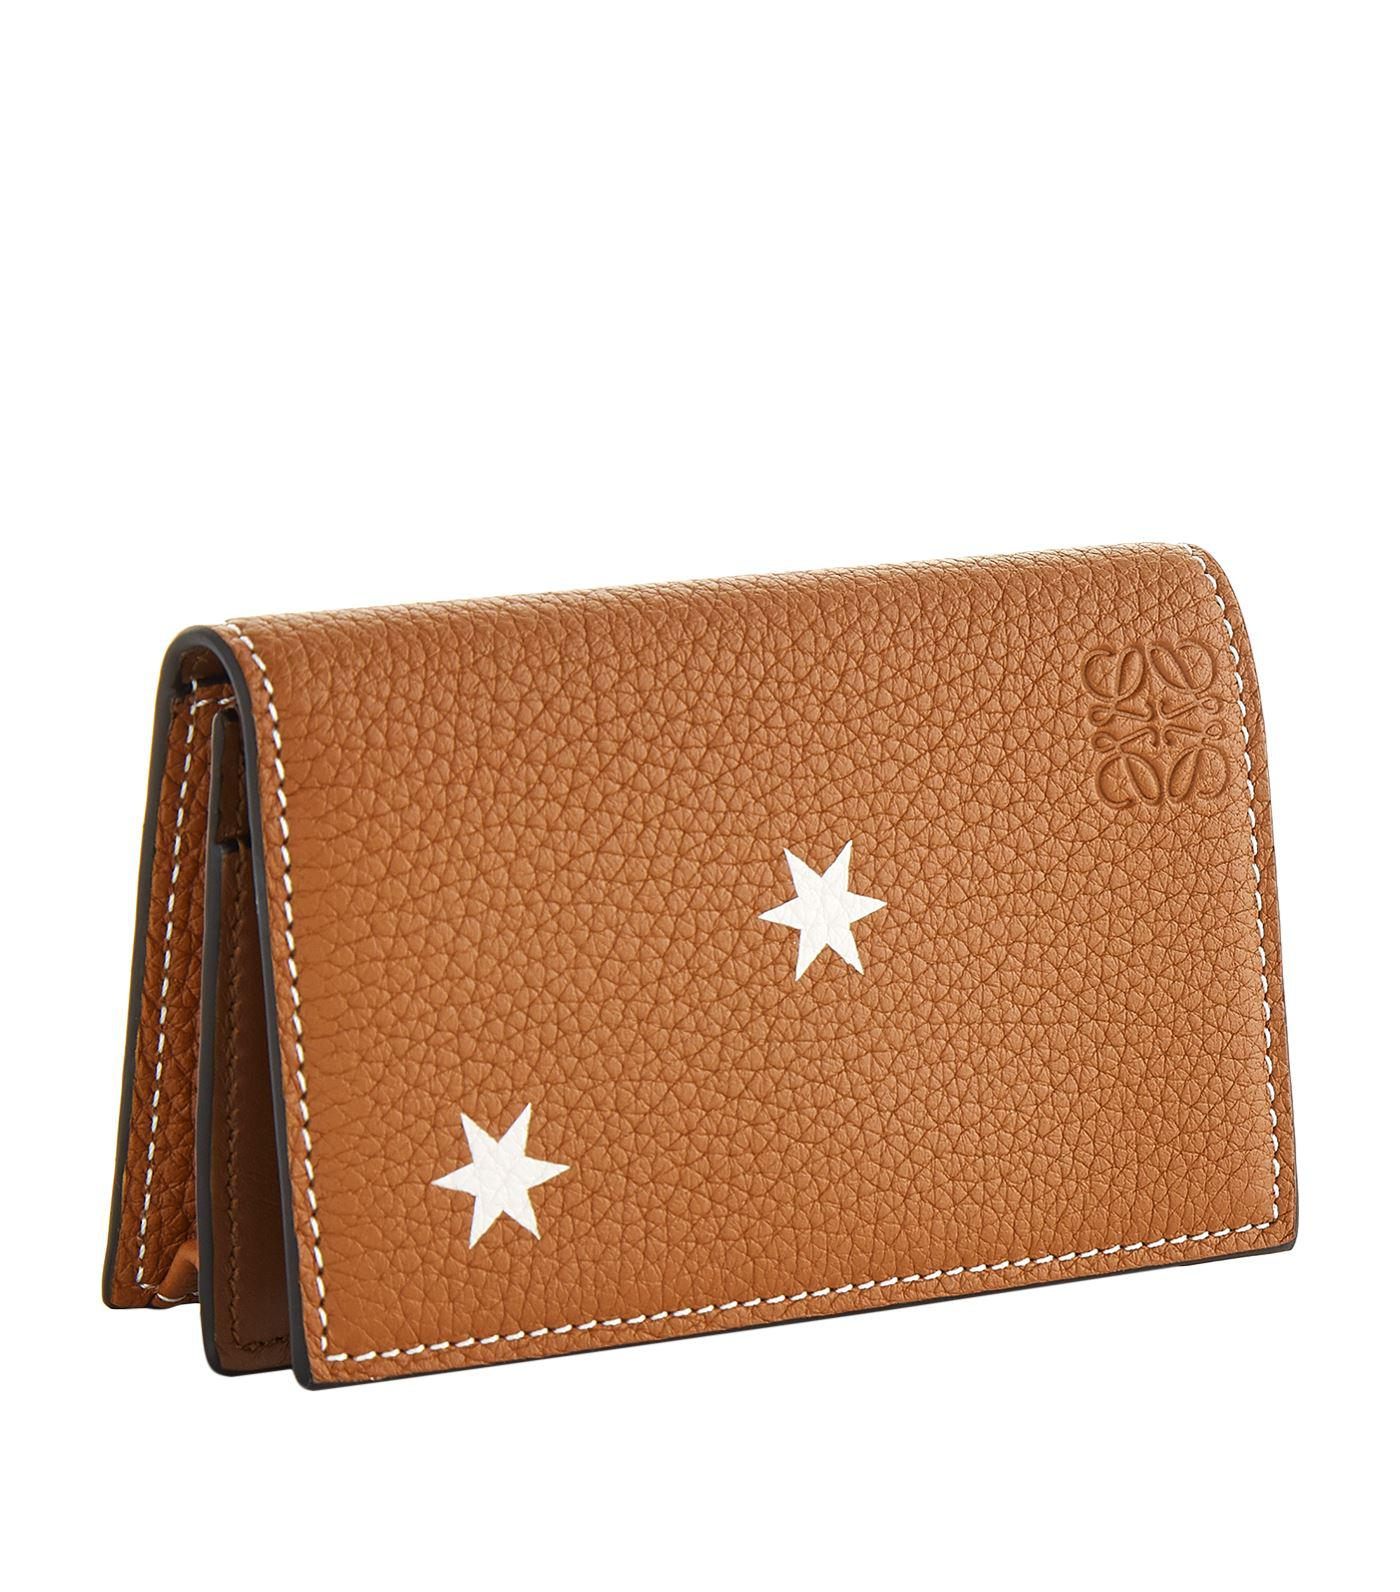 Lyst loewe star business card holder in brown loewe womens brown star business card holder reheart Choice Image